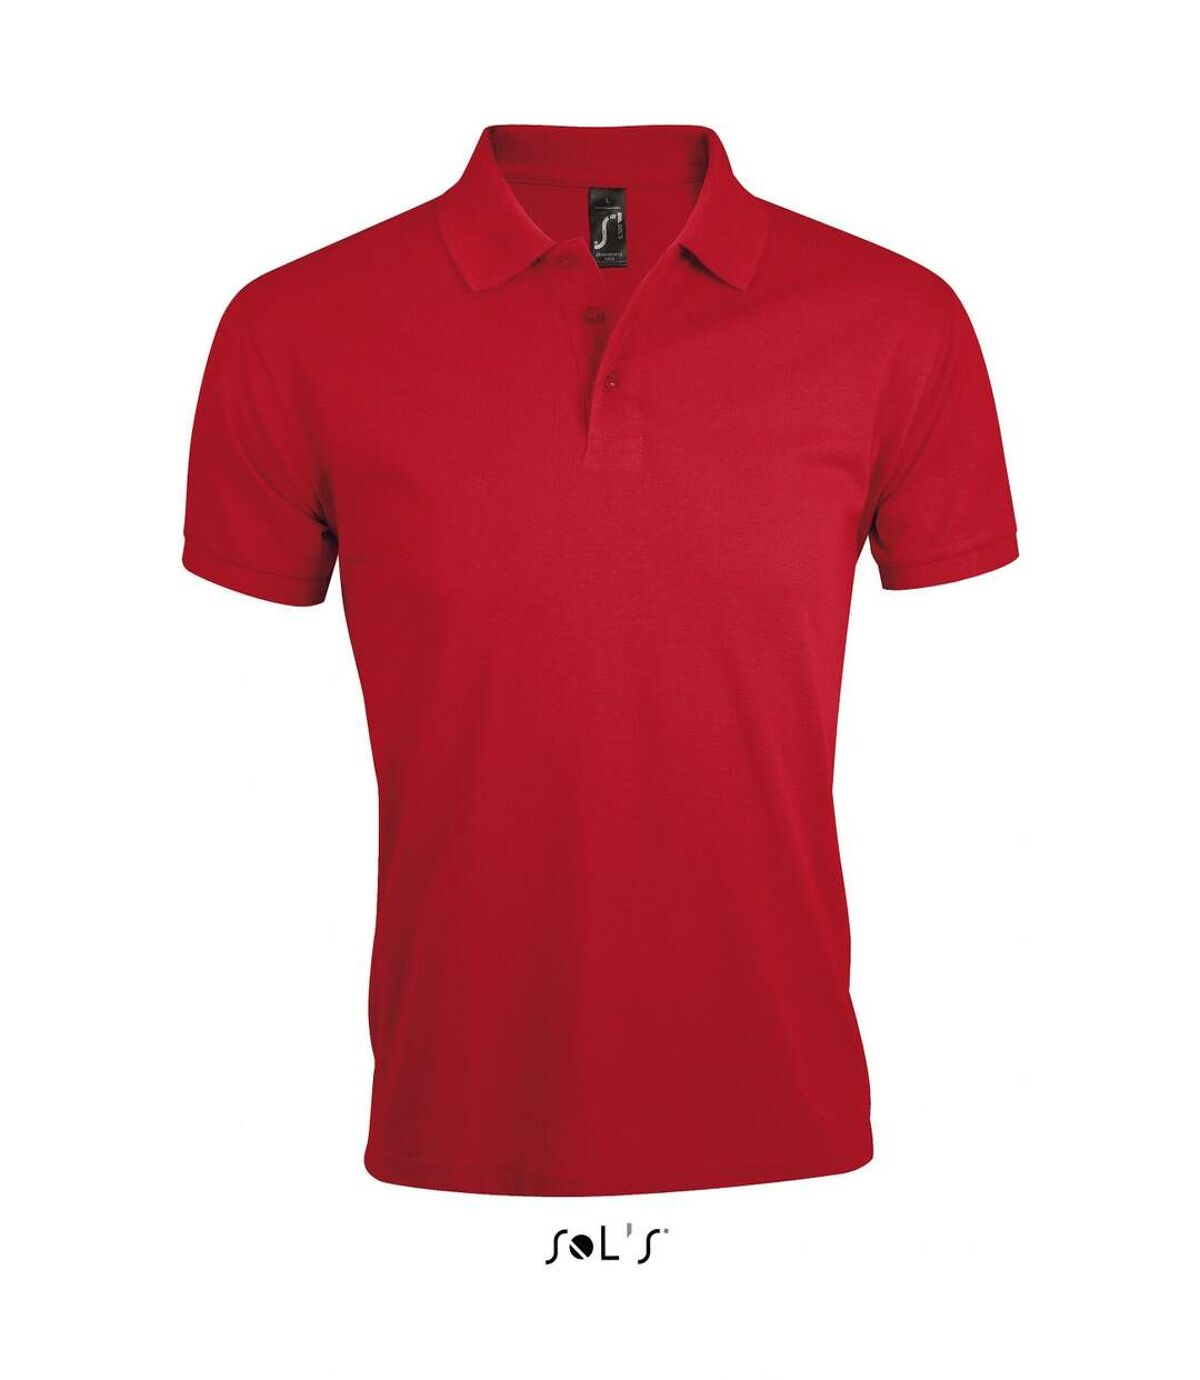 Polo homme polycoton - 00571 - rouge